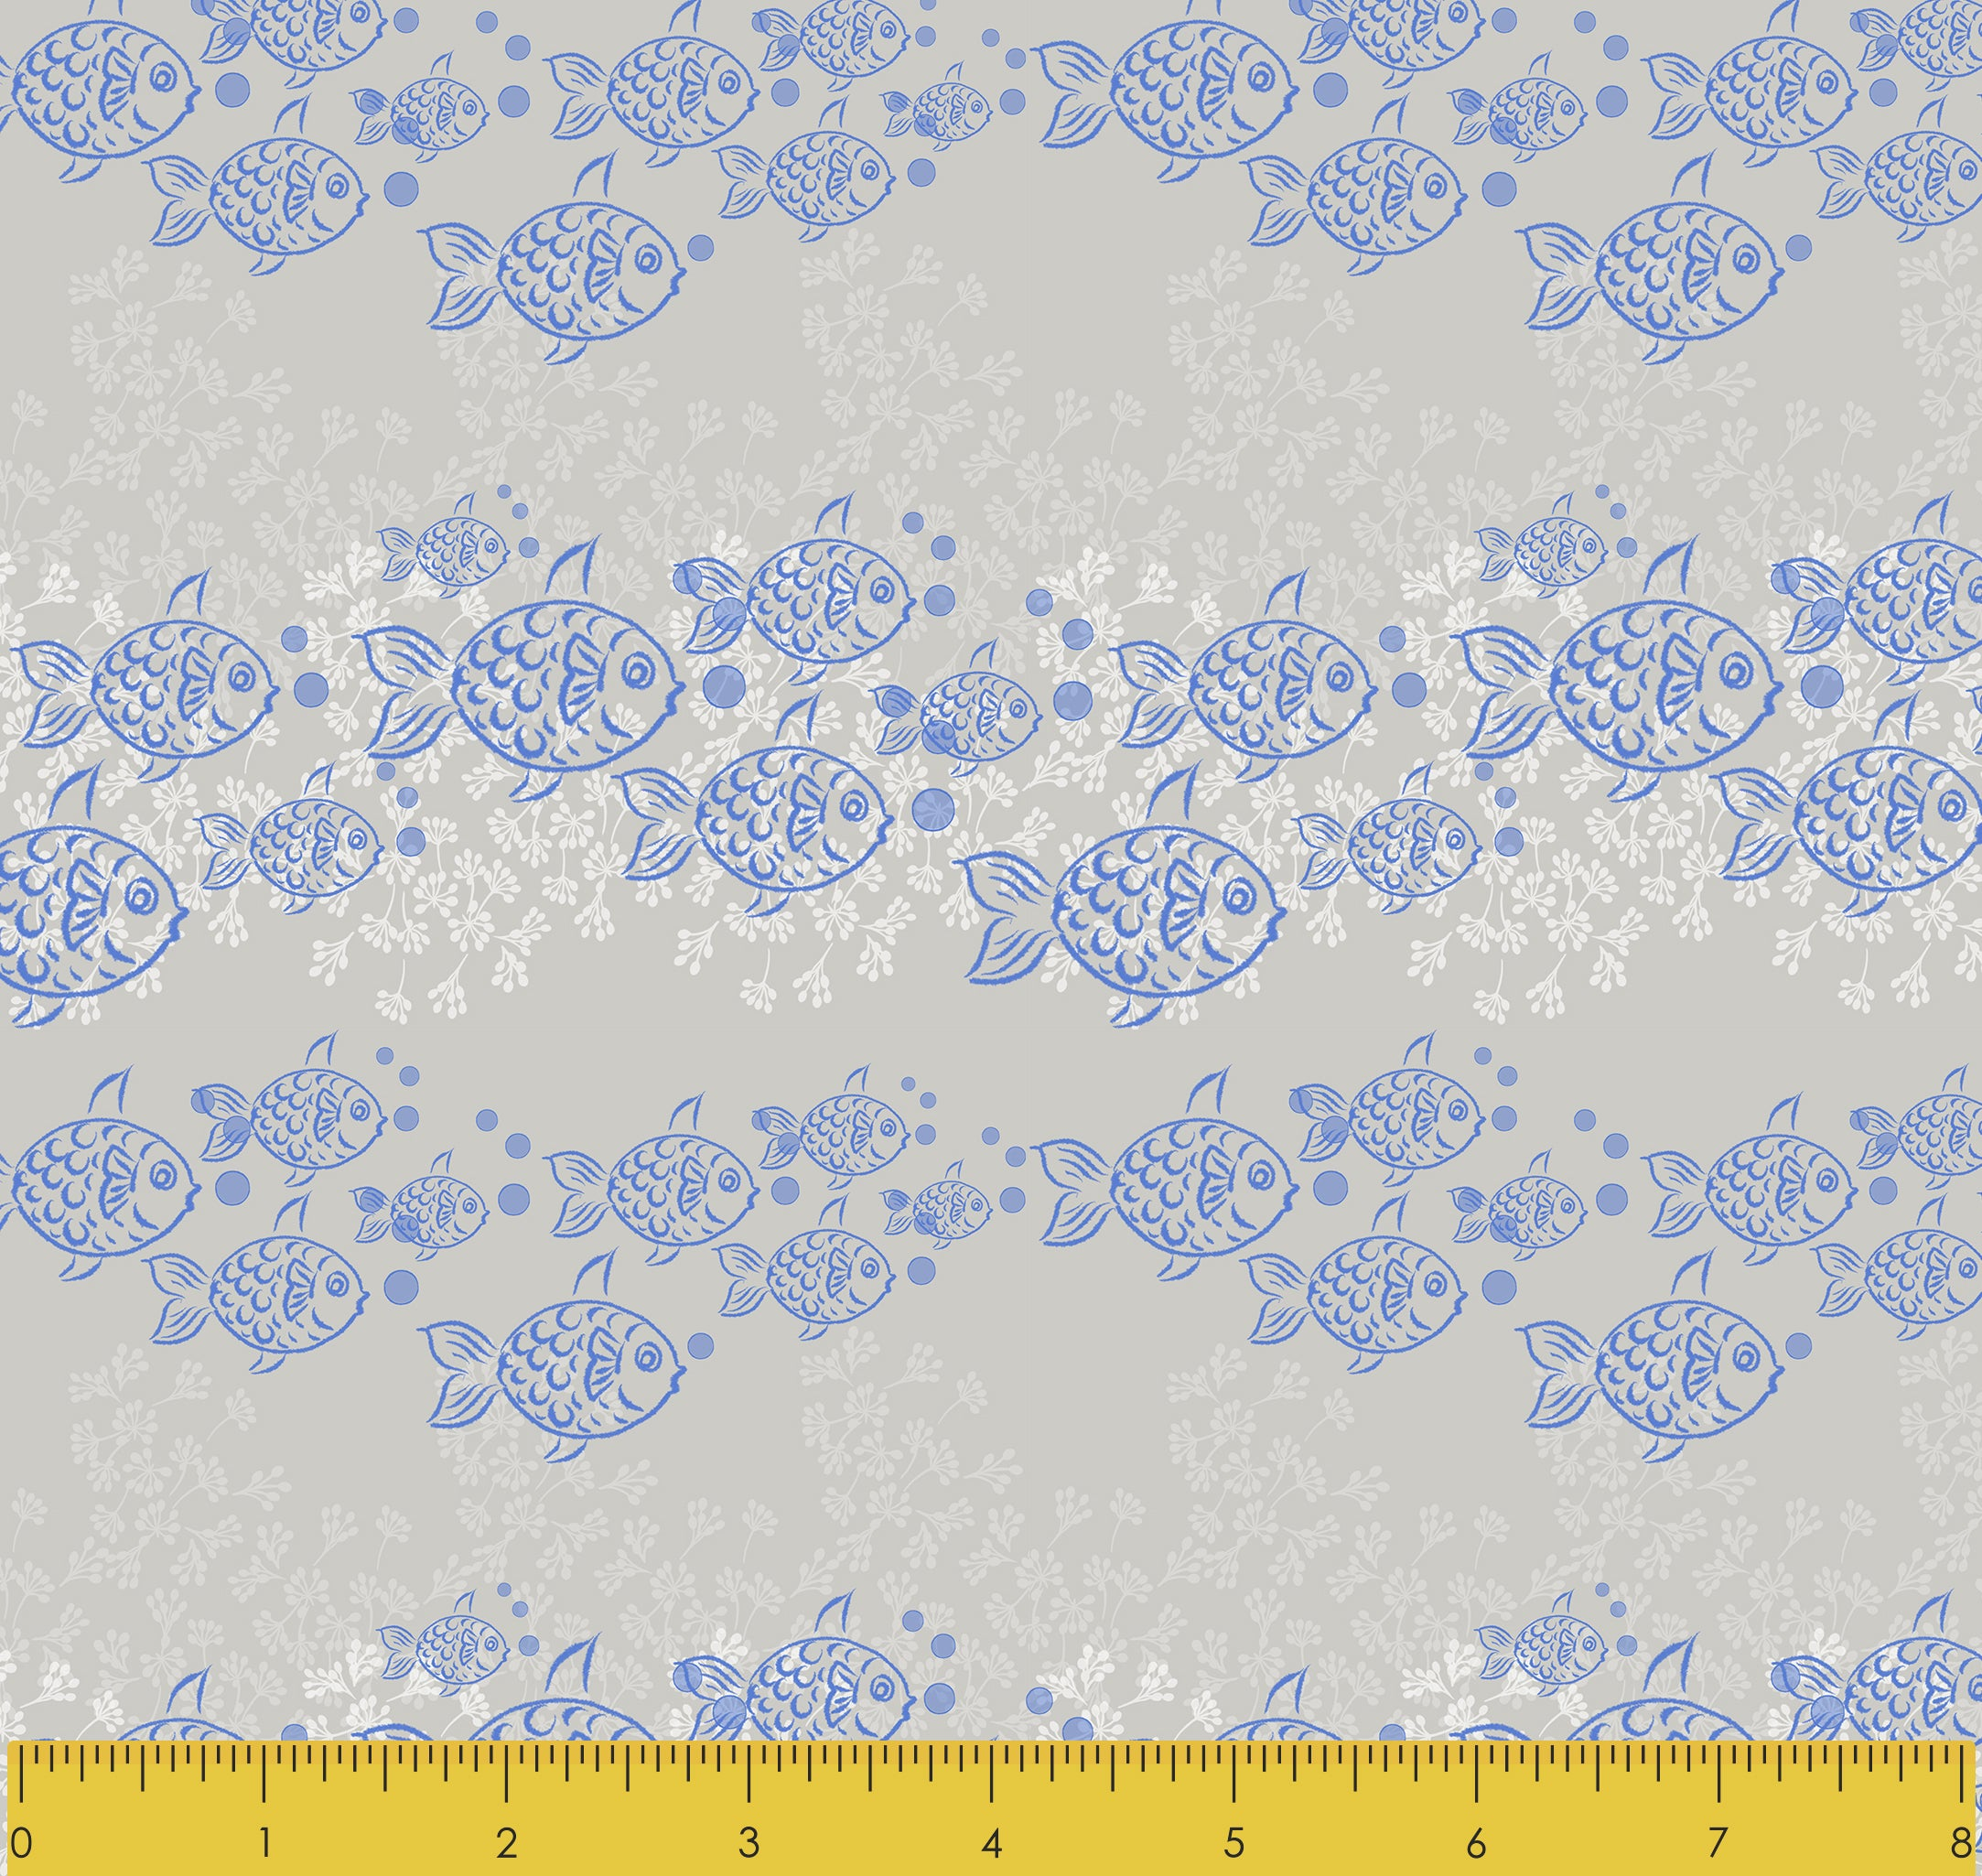 "Stitch & Sparkle Surrender To The Sea-Fish Line 100% Cotton Fabric 44"" Wide, Quilt Crafts Cut by The Yard"